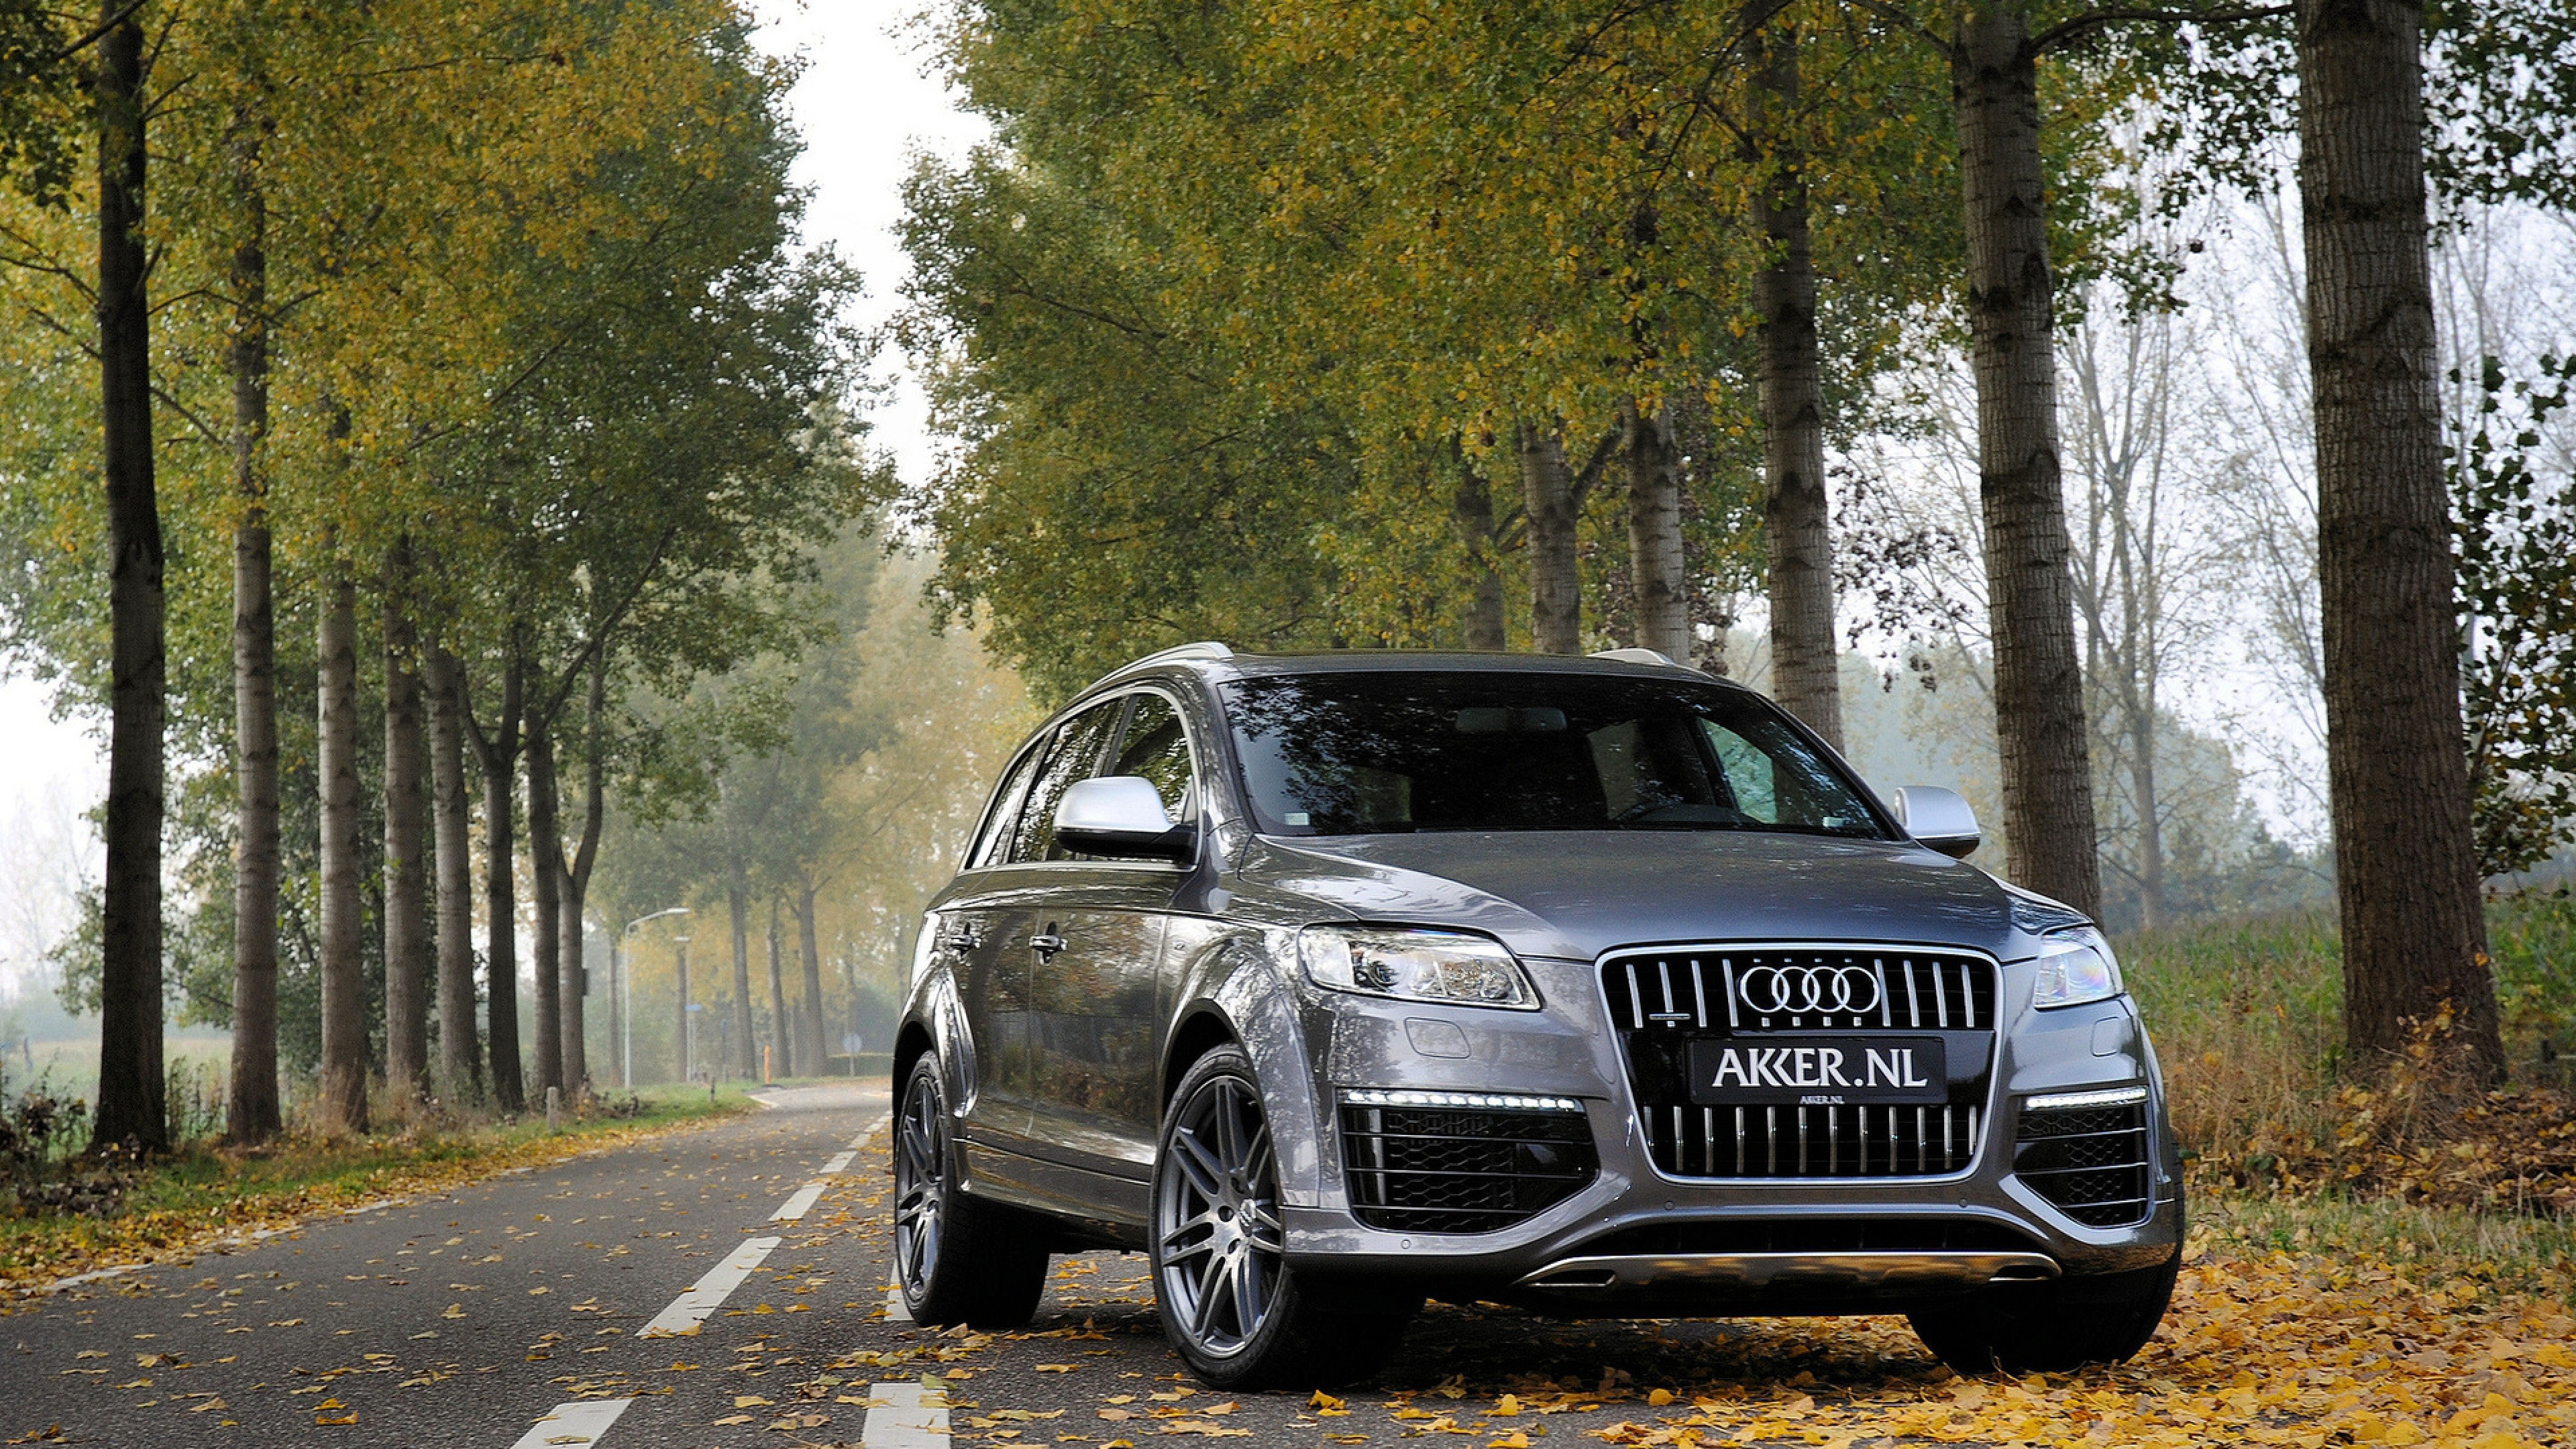 Jeep Grey Metallic Q7 Gray Audi Wallpaper Background 4K Ultra HD 3840x2160